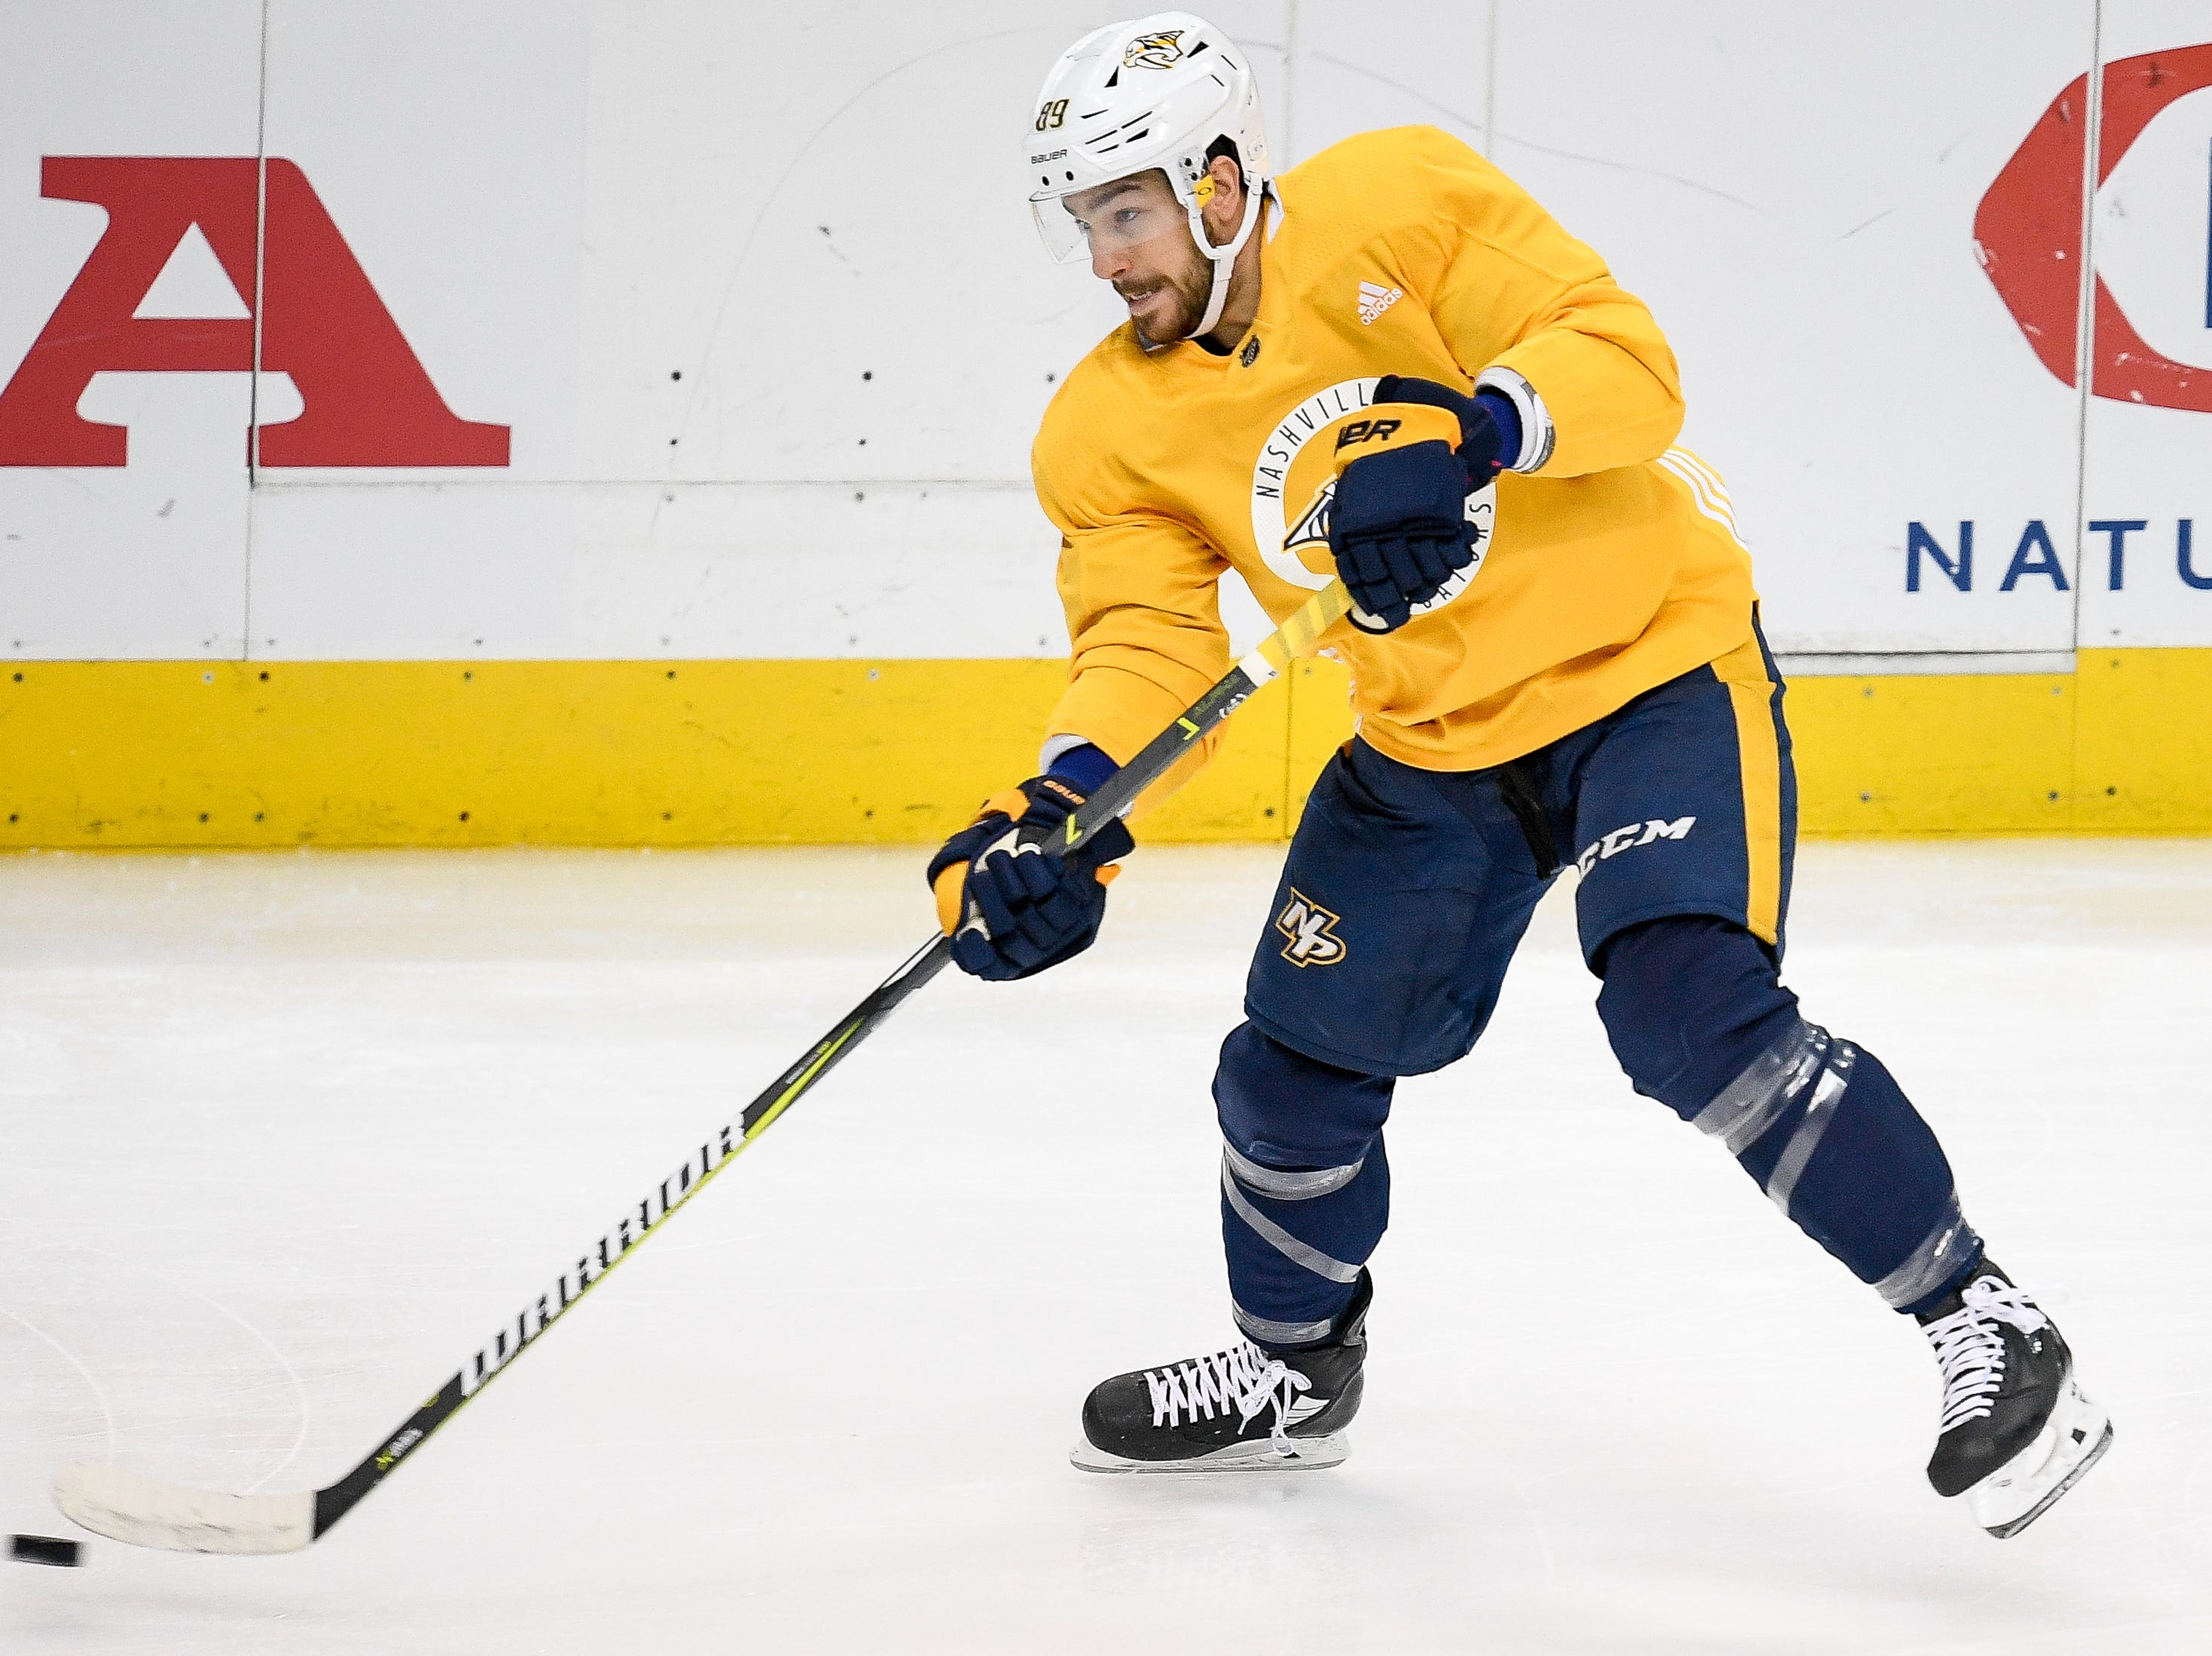 Nashville Predators center Frederick Gaudreau (89) skates during practice before the divisional semifinal game against the Dallas Stars at the American Airlines Center in Dallas, Texas, Monday, April 22, 2019.